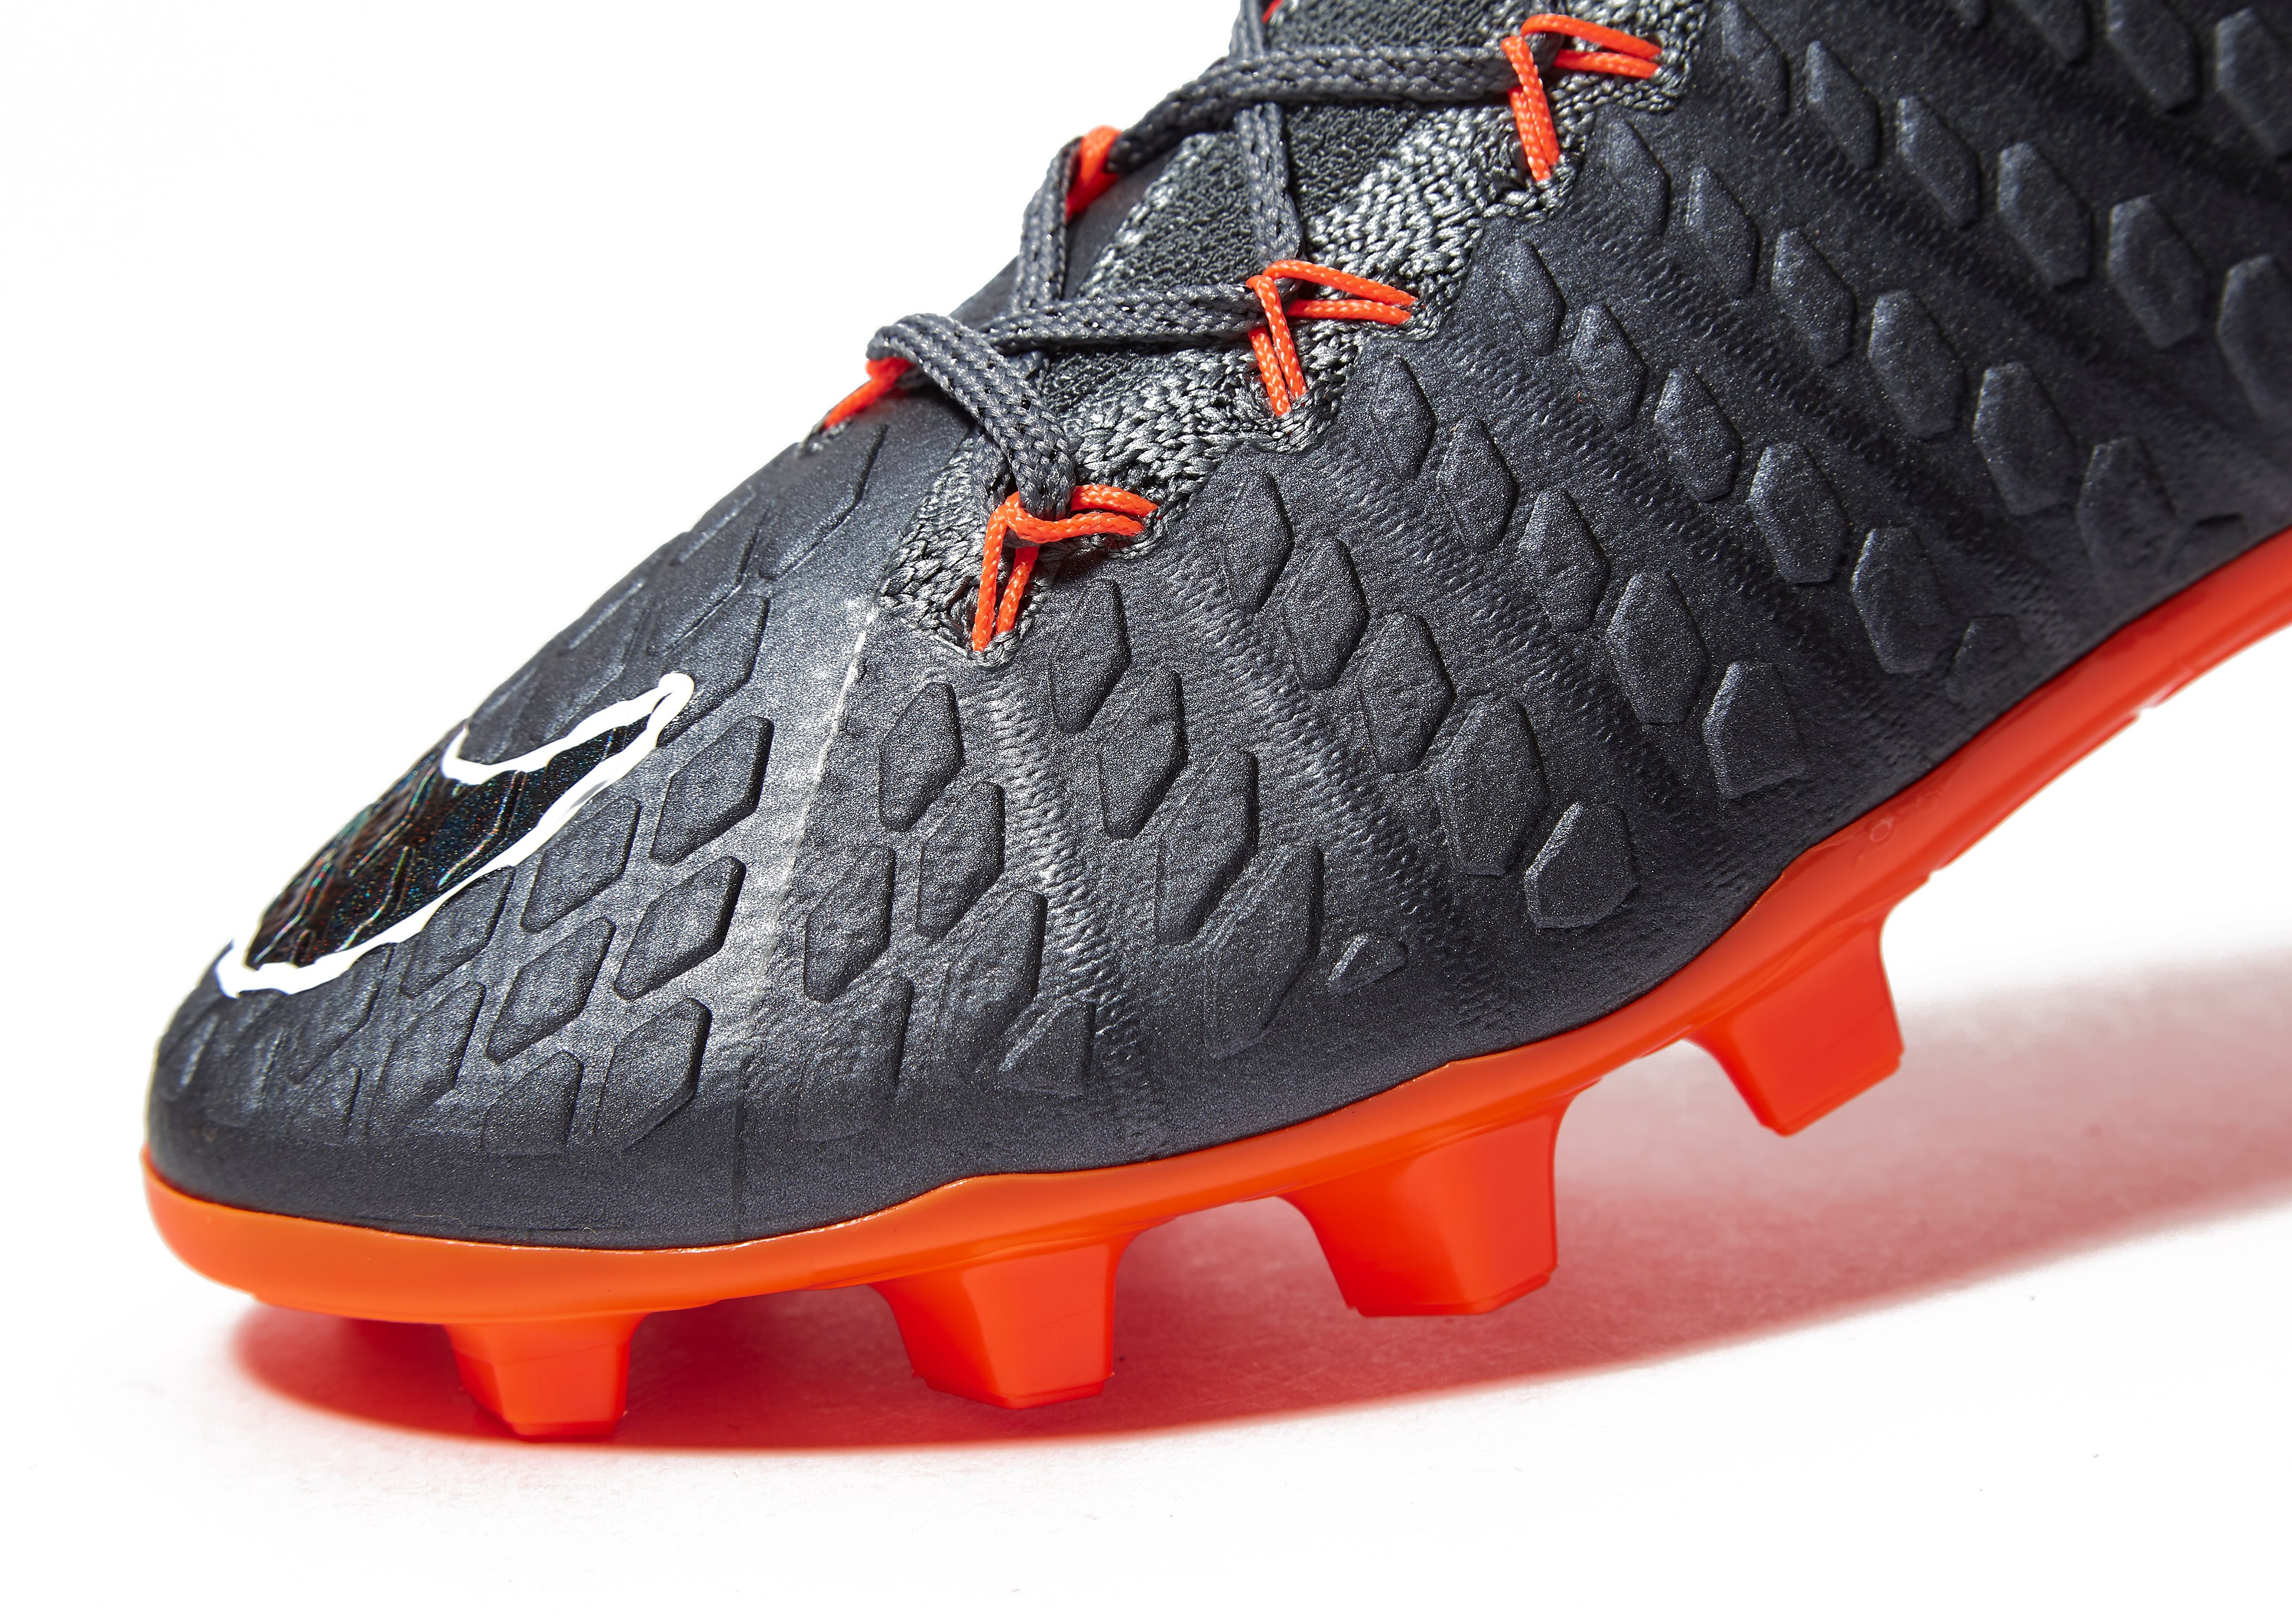 Nike Fast AF Hypervenom Elite Dynamic Fit FG Junior